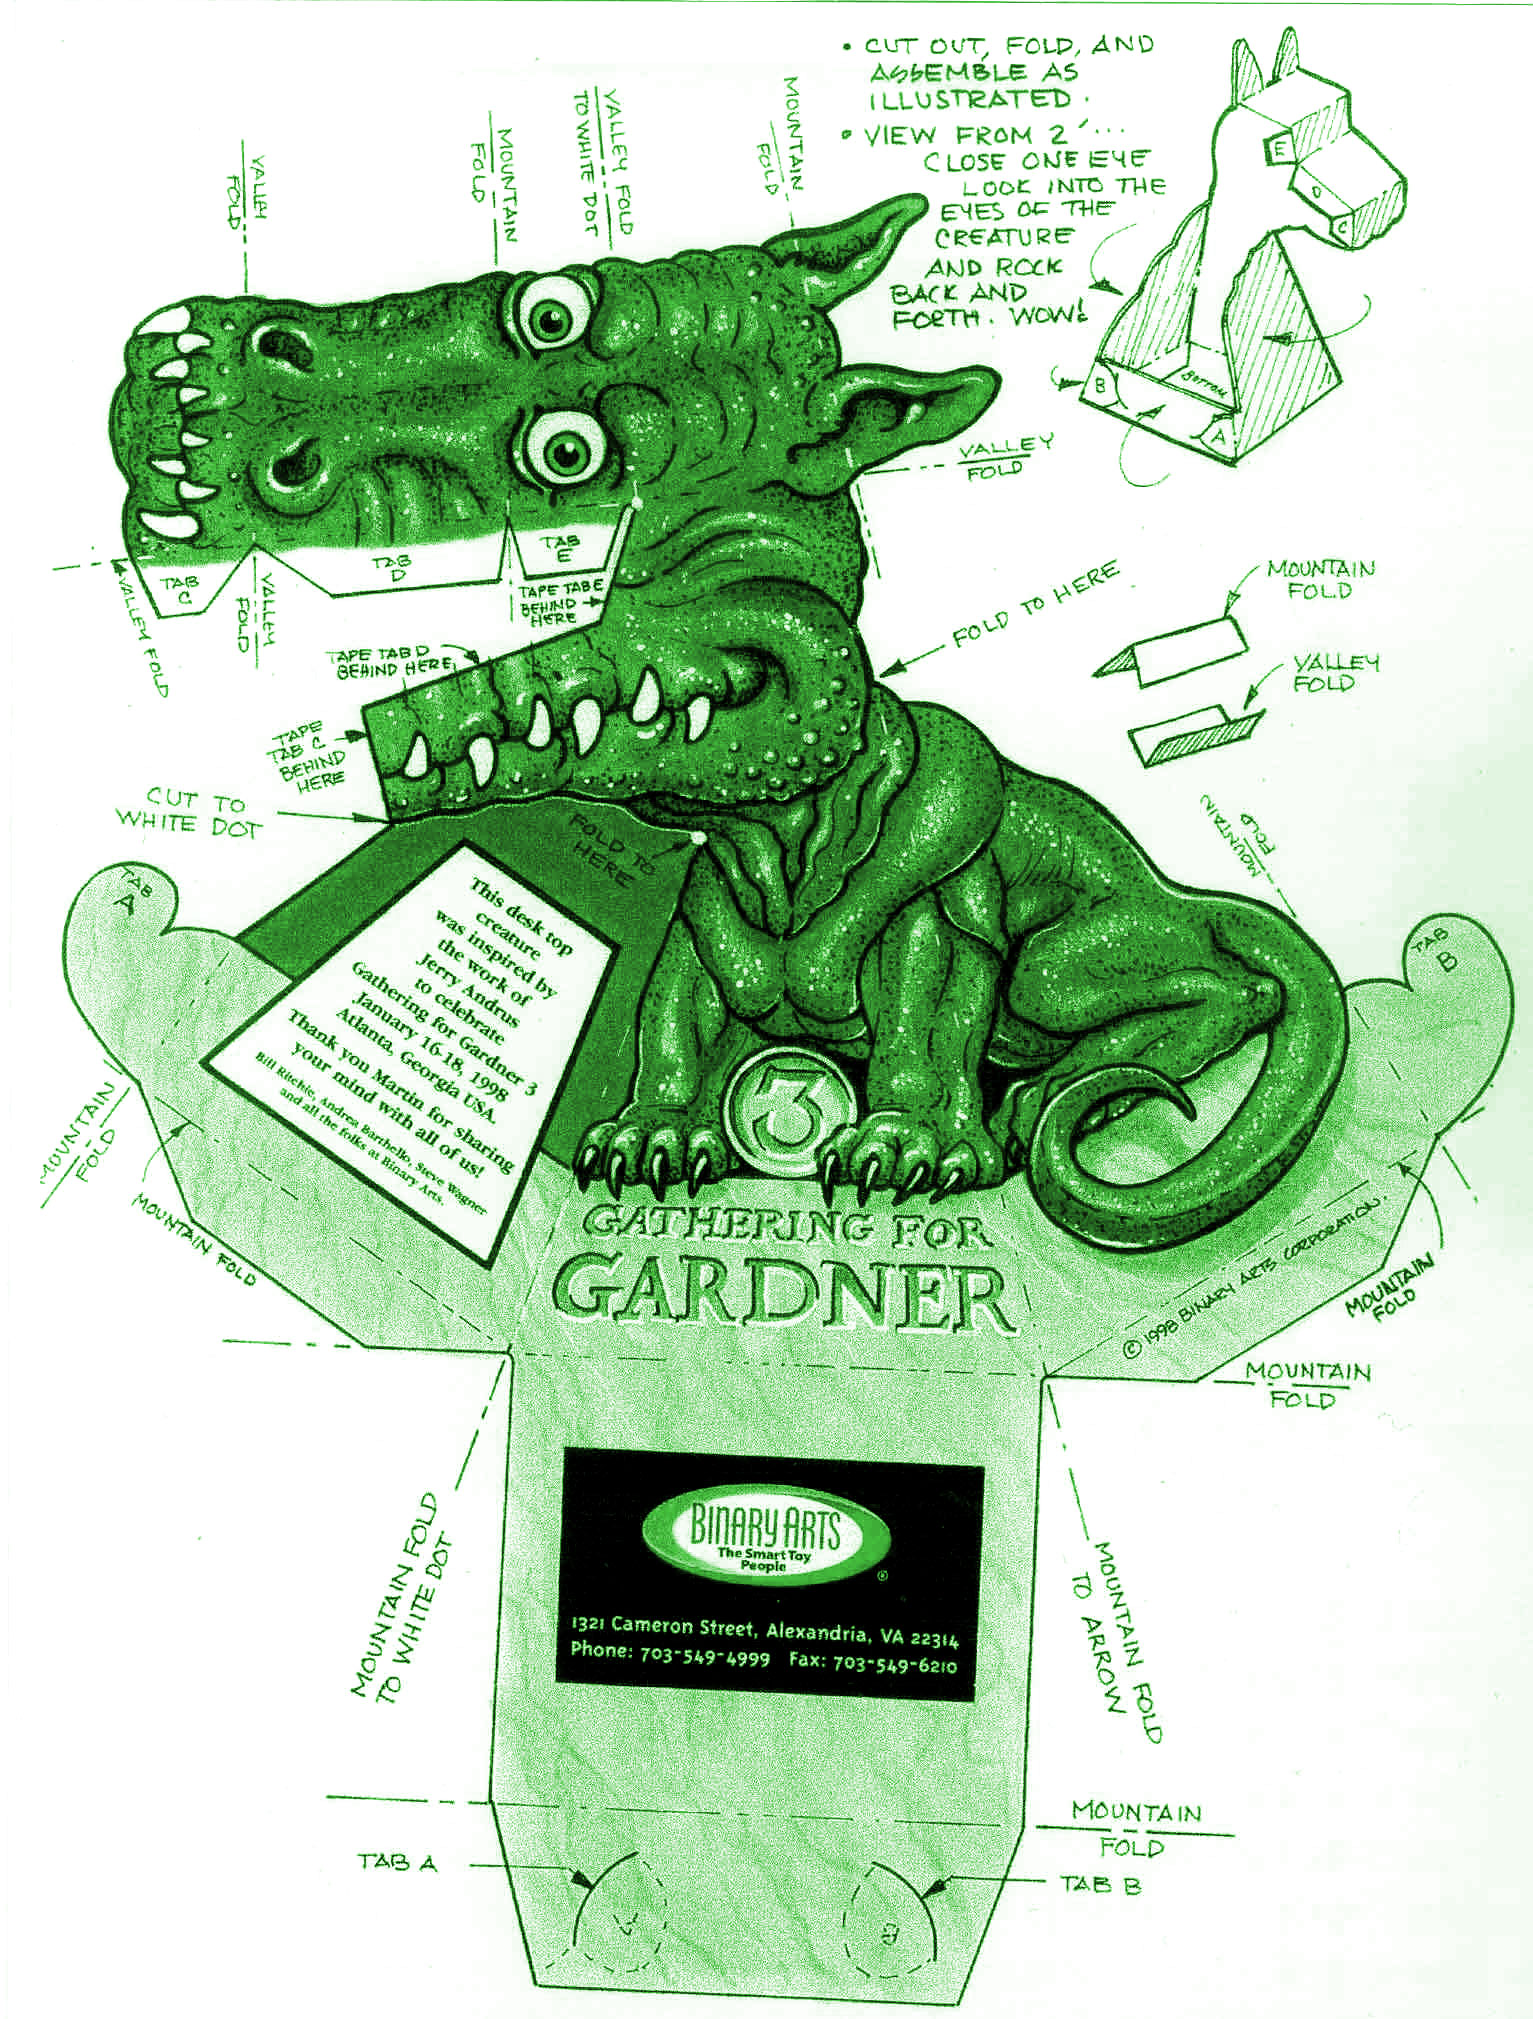 gathering for gardner paper dragon in great things on the web